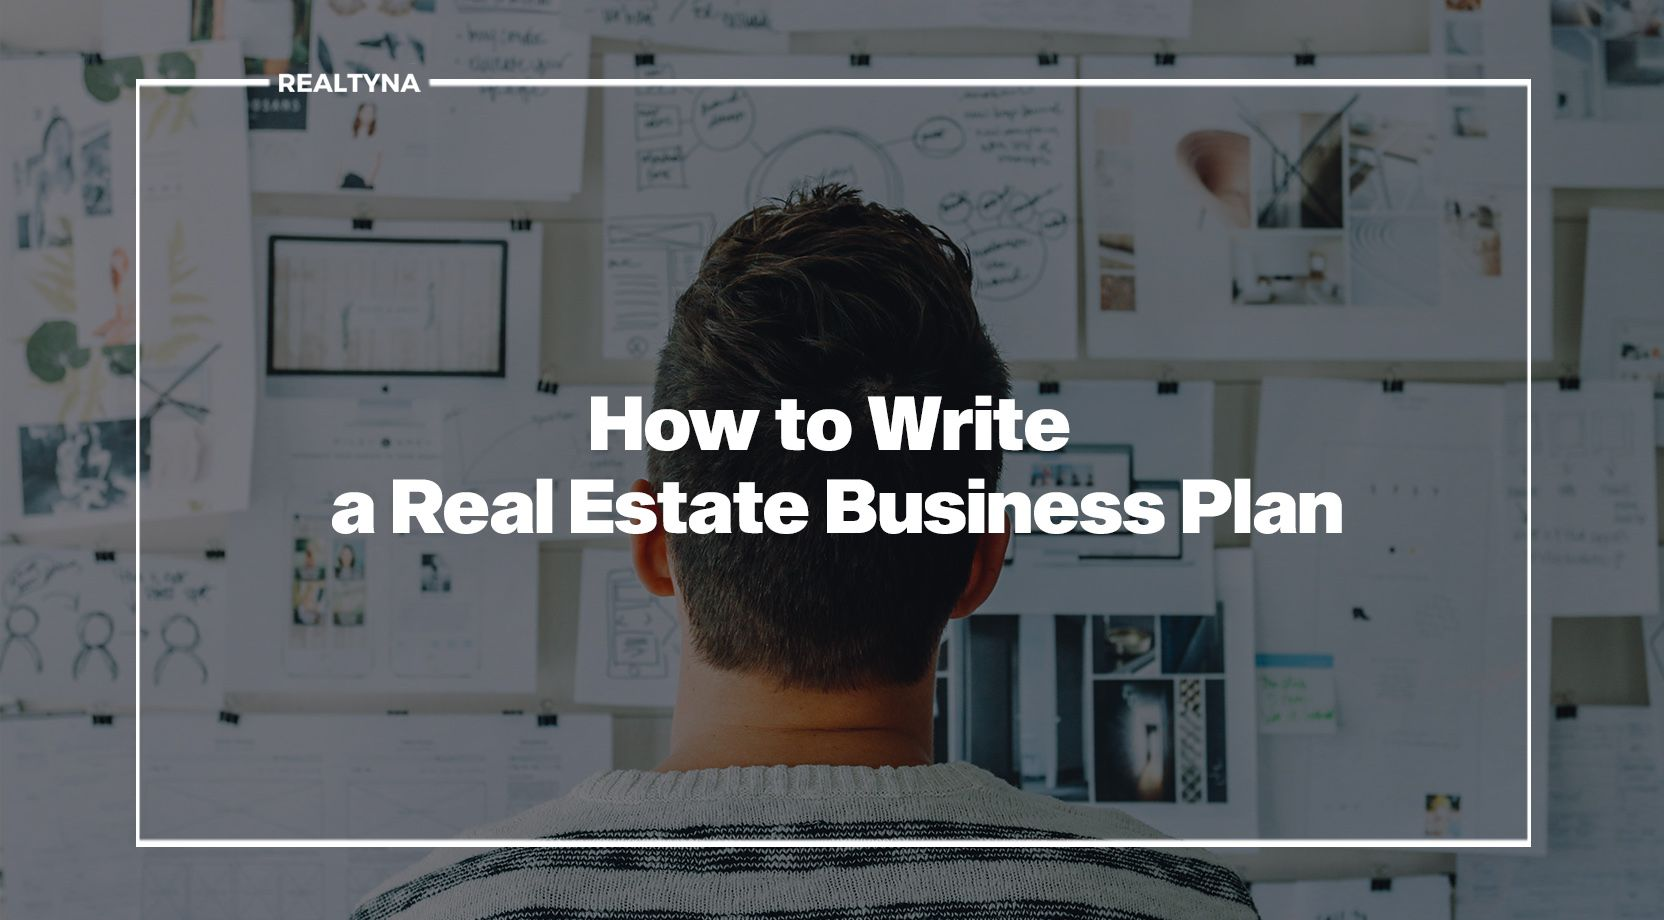 How to Write a Real Estate Business Plan